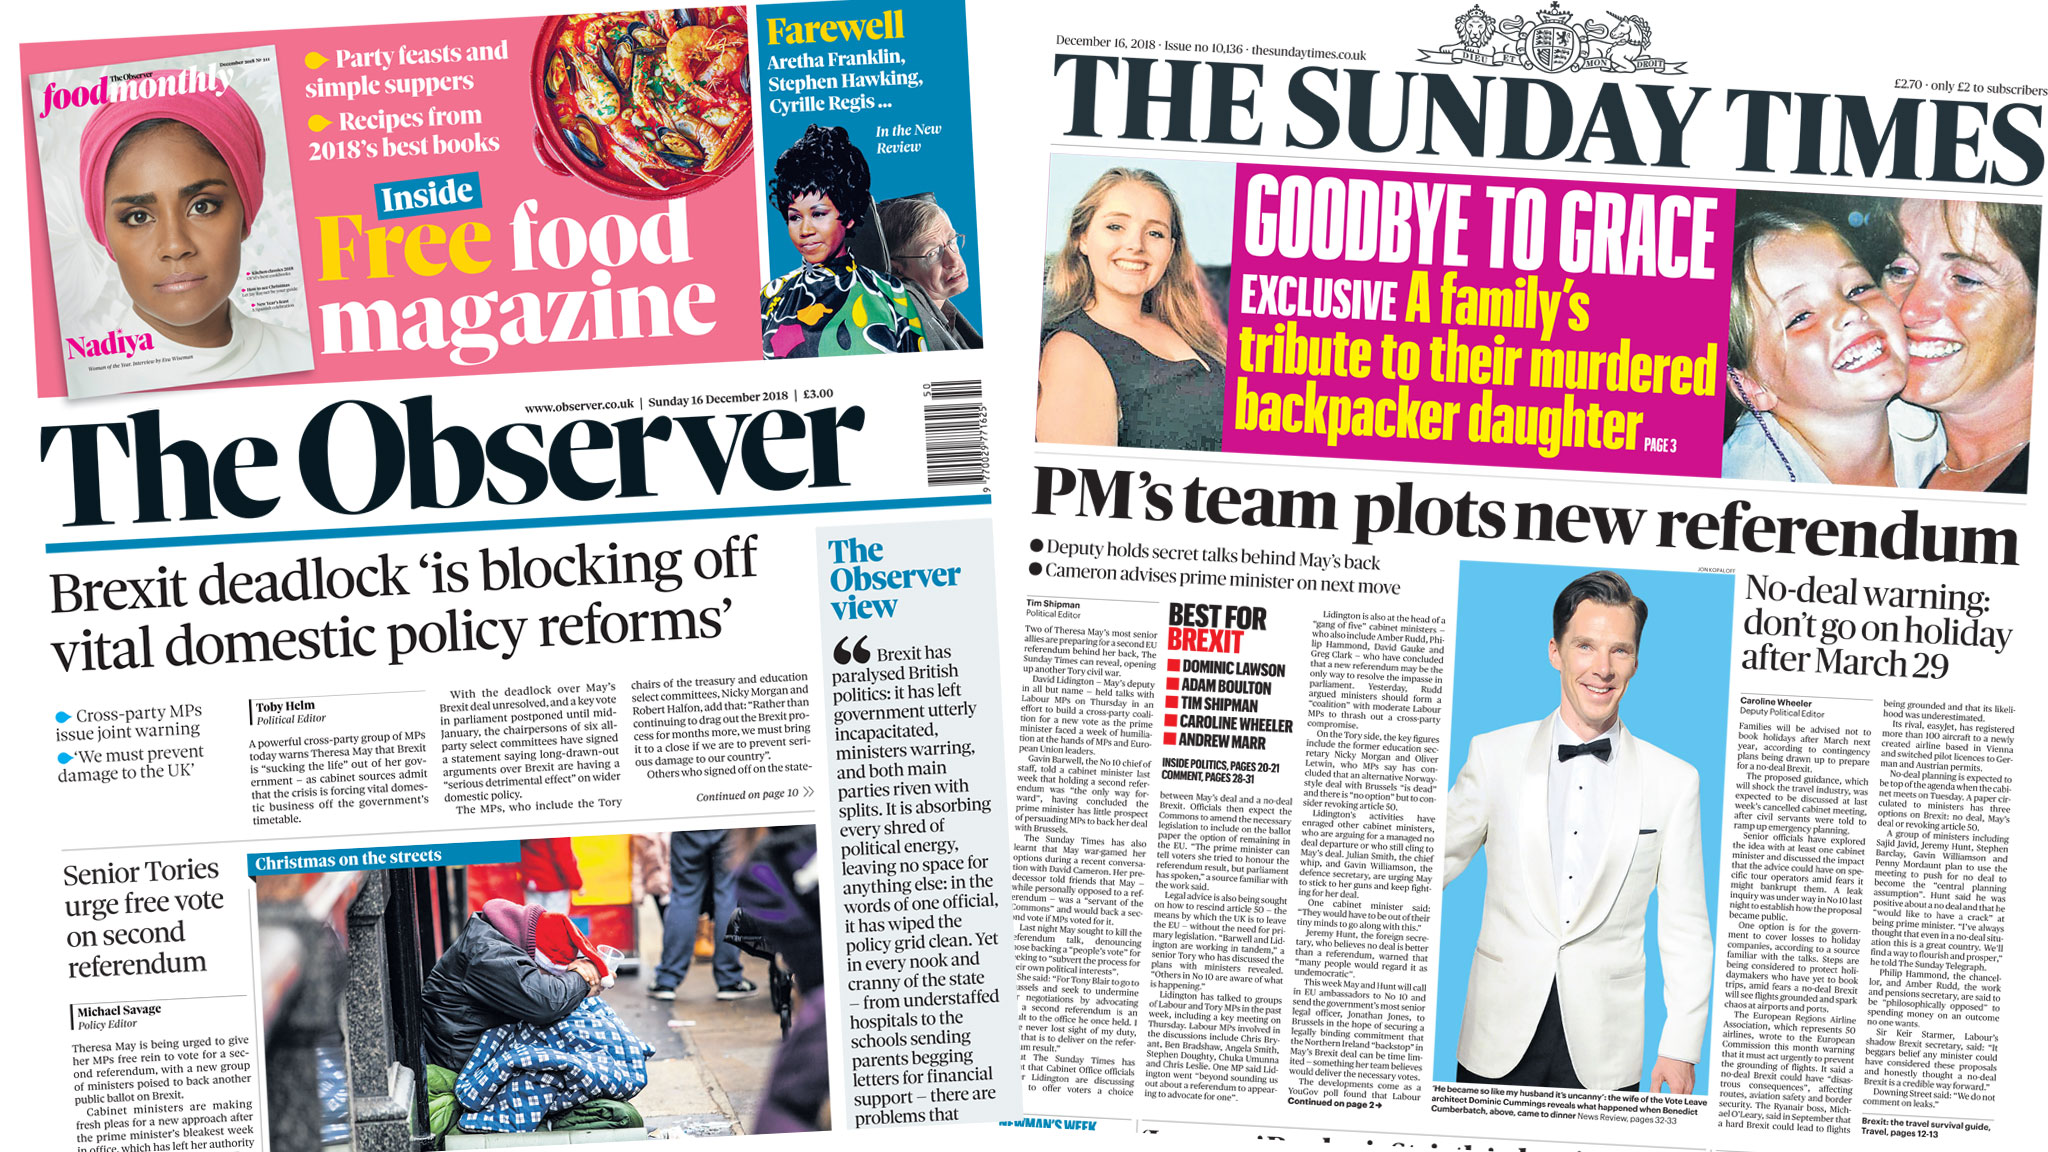 The Papers: 'PM's team plots new referendum'